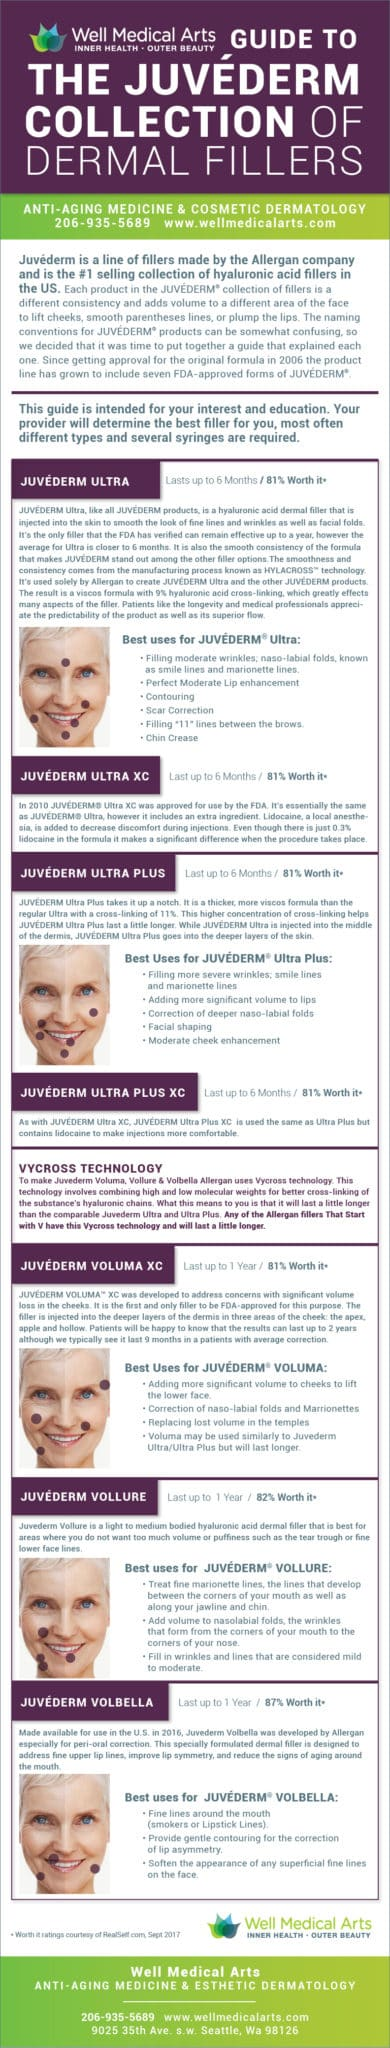 Many people are confused about all of the different Juvederm dermal Fillers on the Market. This guide explains the major differences between them and some of their uses. This guide is intended for your eduction but does not replace a consultation with your provider. Call Well Medical Arts at 206-935-5689 to schedule your consultation.